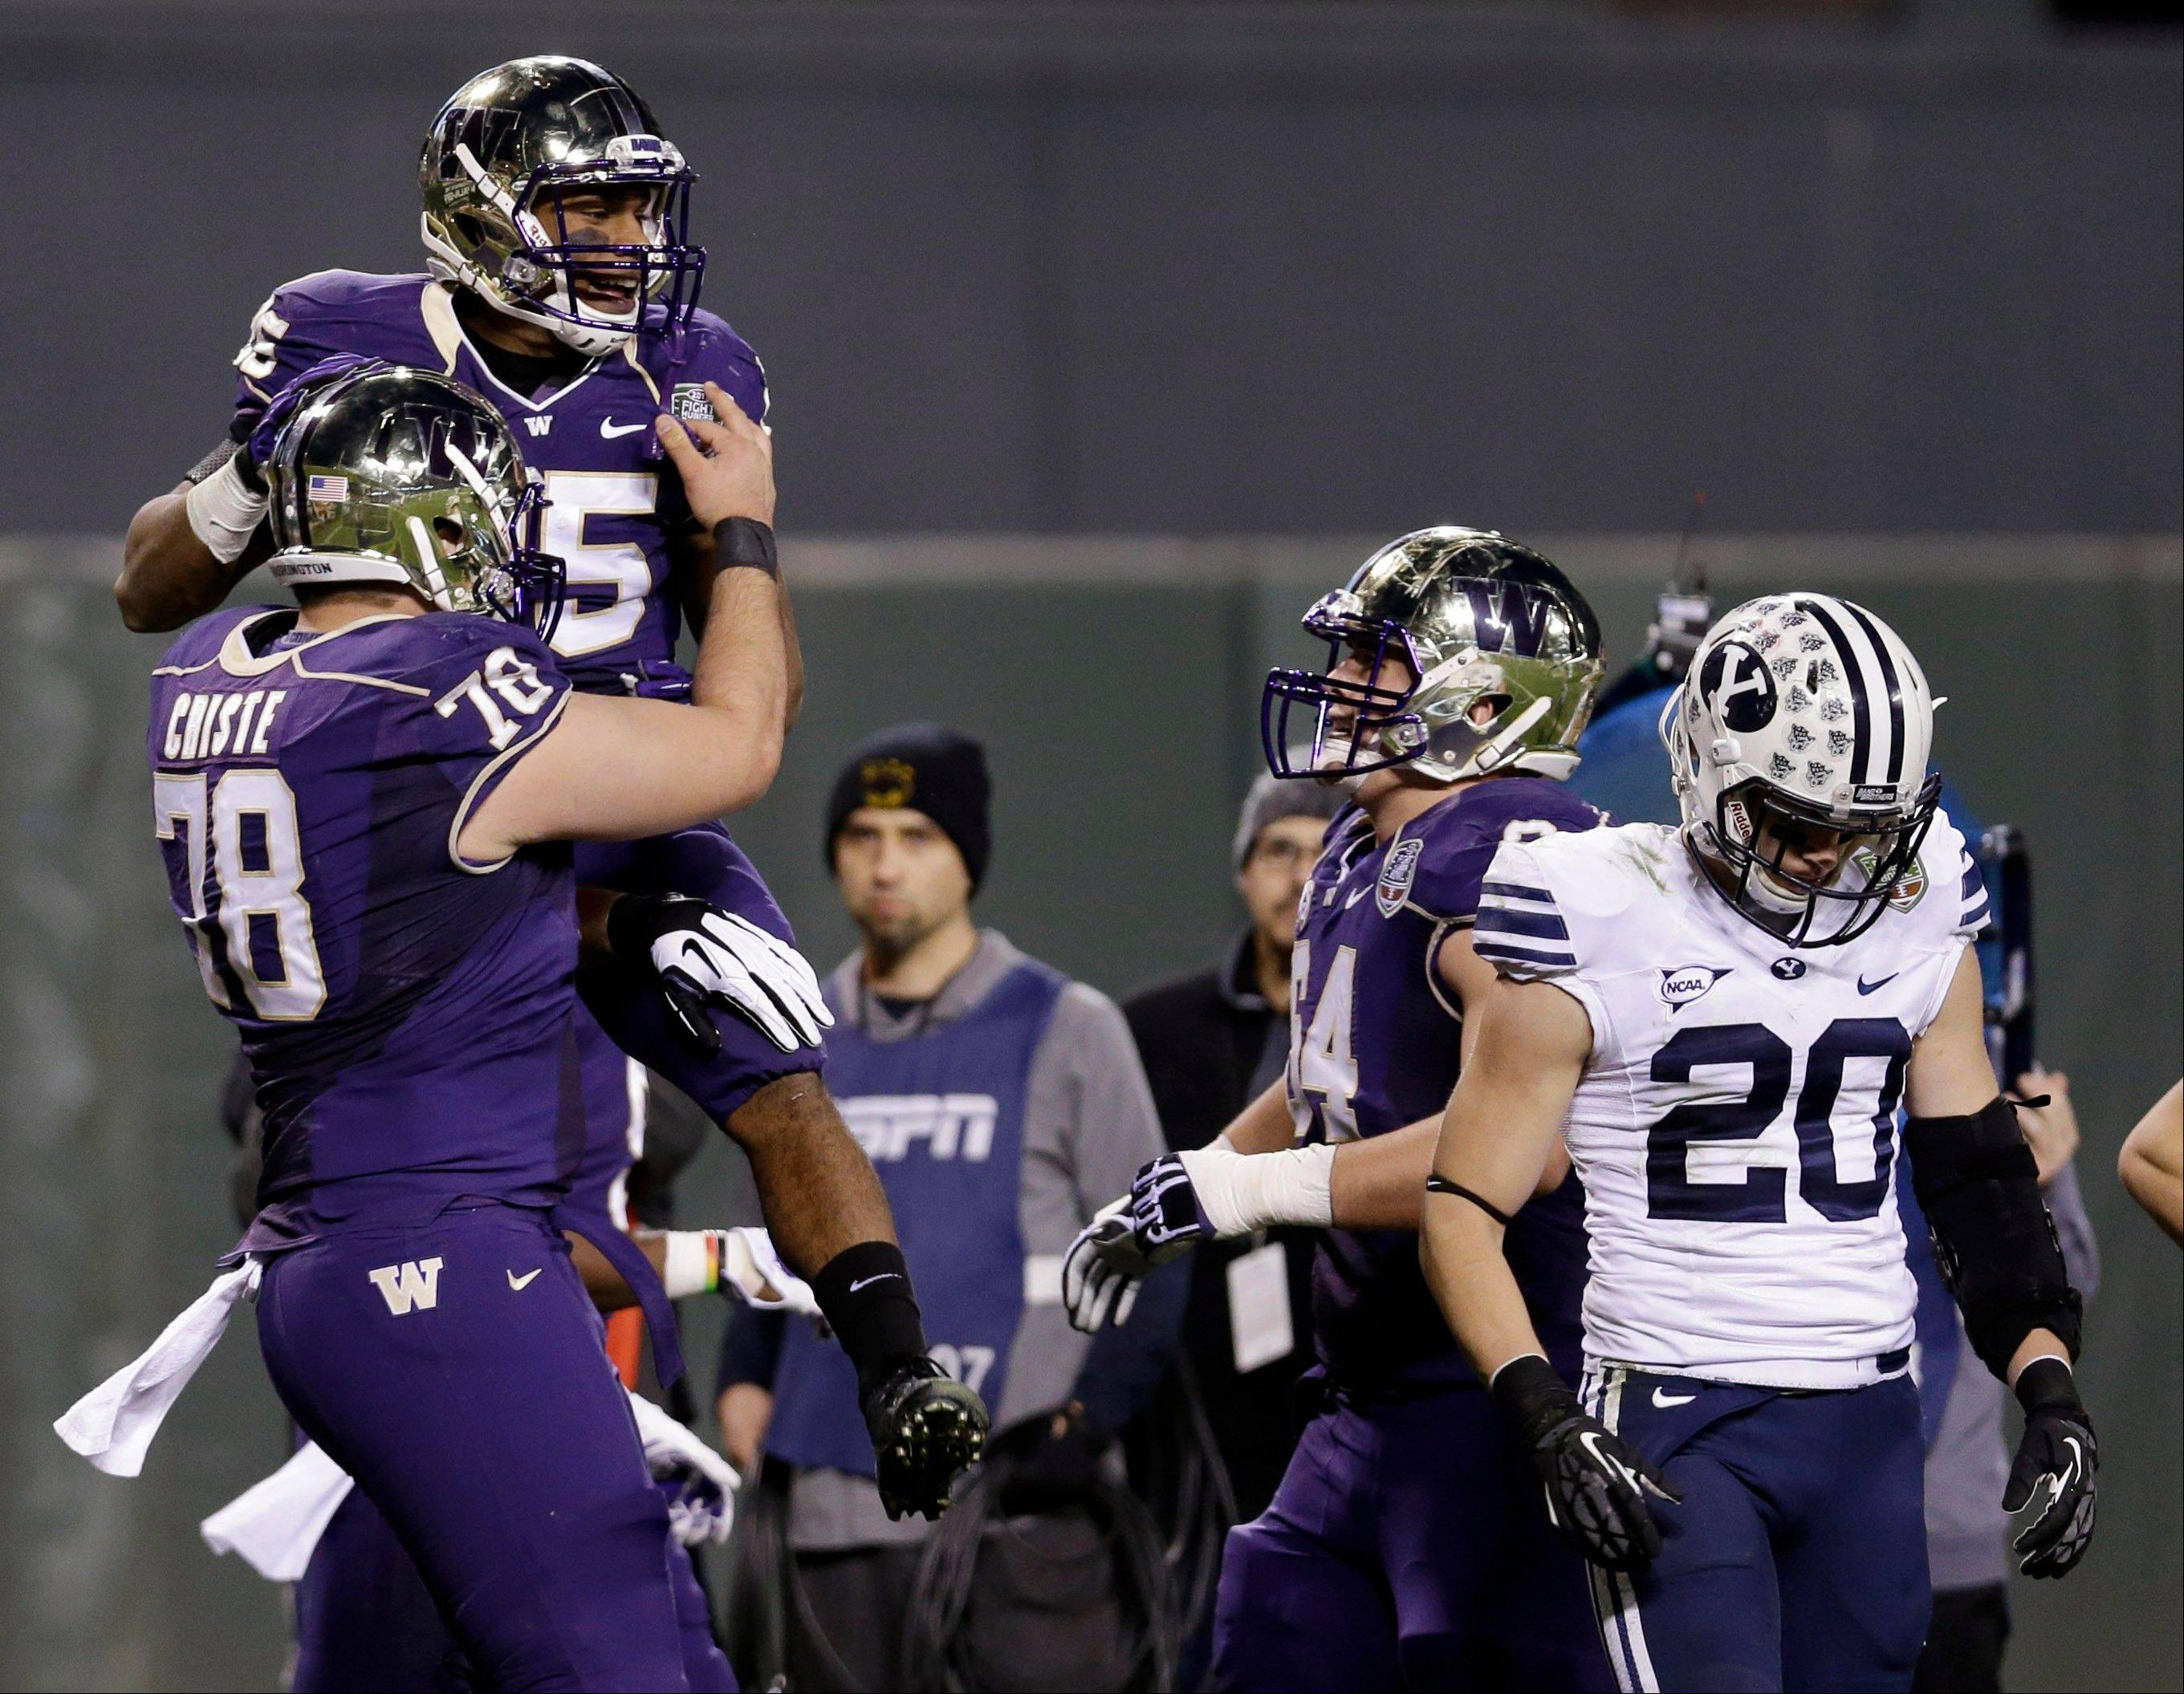 Washington running back Bishop Sankey gets a lift from teammate Mike Criste after rushing for a touchdown against BYU during first half of the Fight Hunger Bowl on Friday in San Francisco.